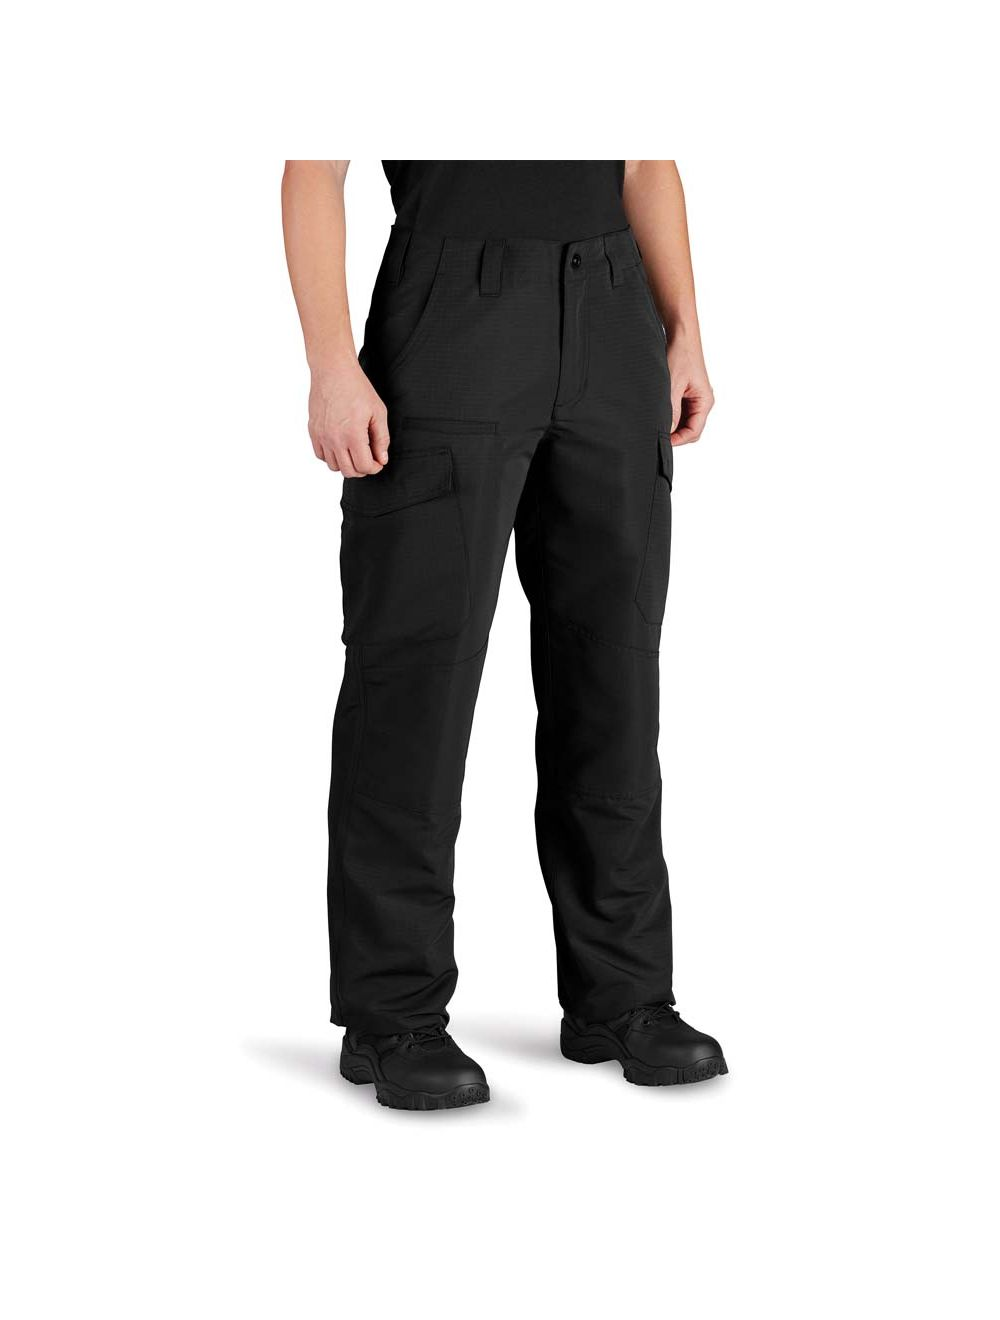 Propper® Women's EdgeTec Tactical Pant-Propper